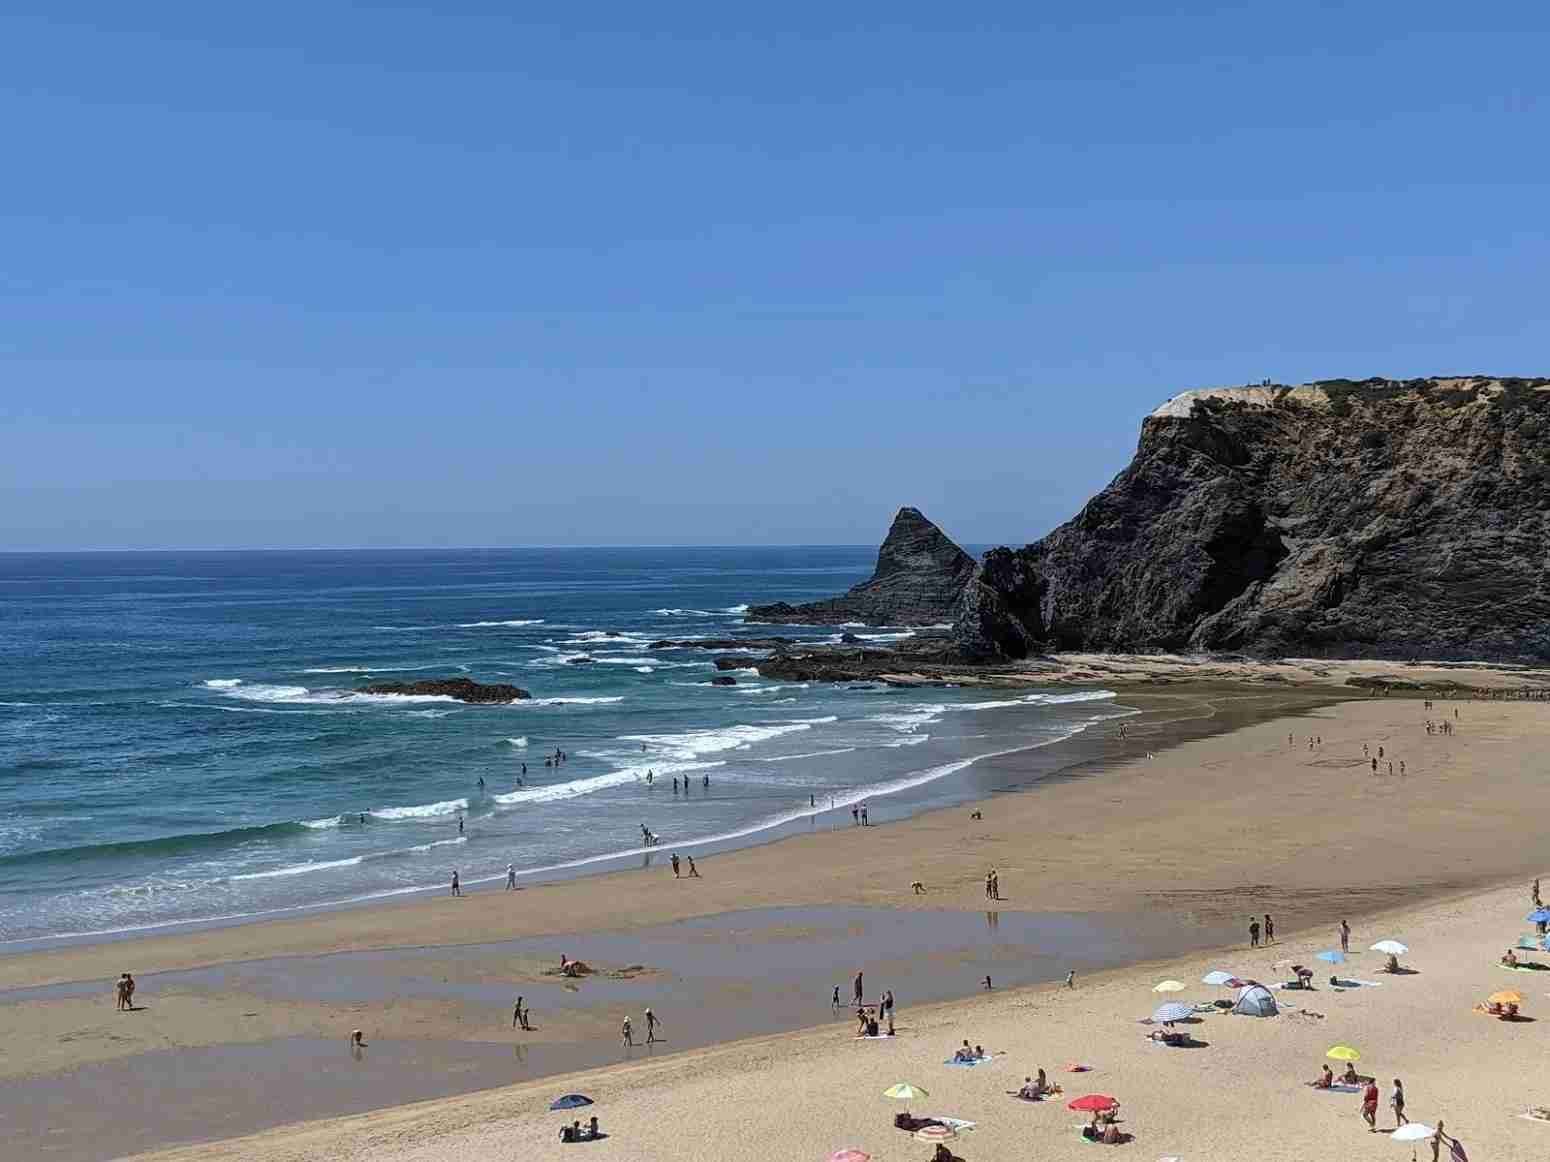 Driving along the coast allowed us to visit Praia de Odeceixe Mar which is on the western coast of the Algarve (Photo by Jennifer Yellin / Deals We Like)